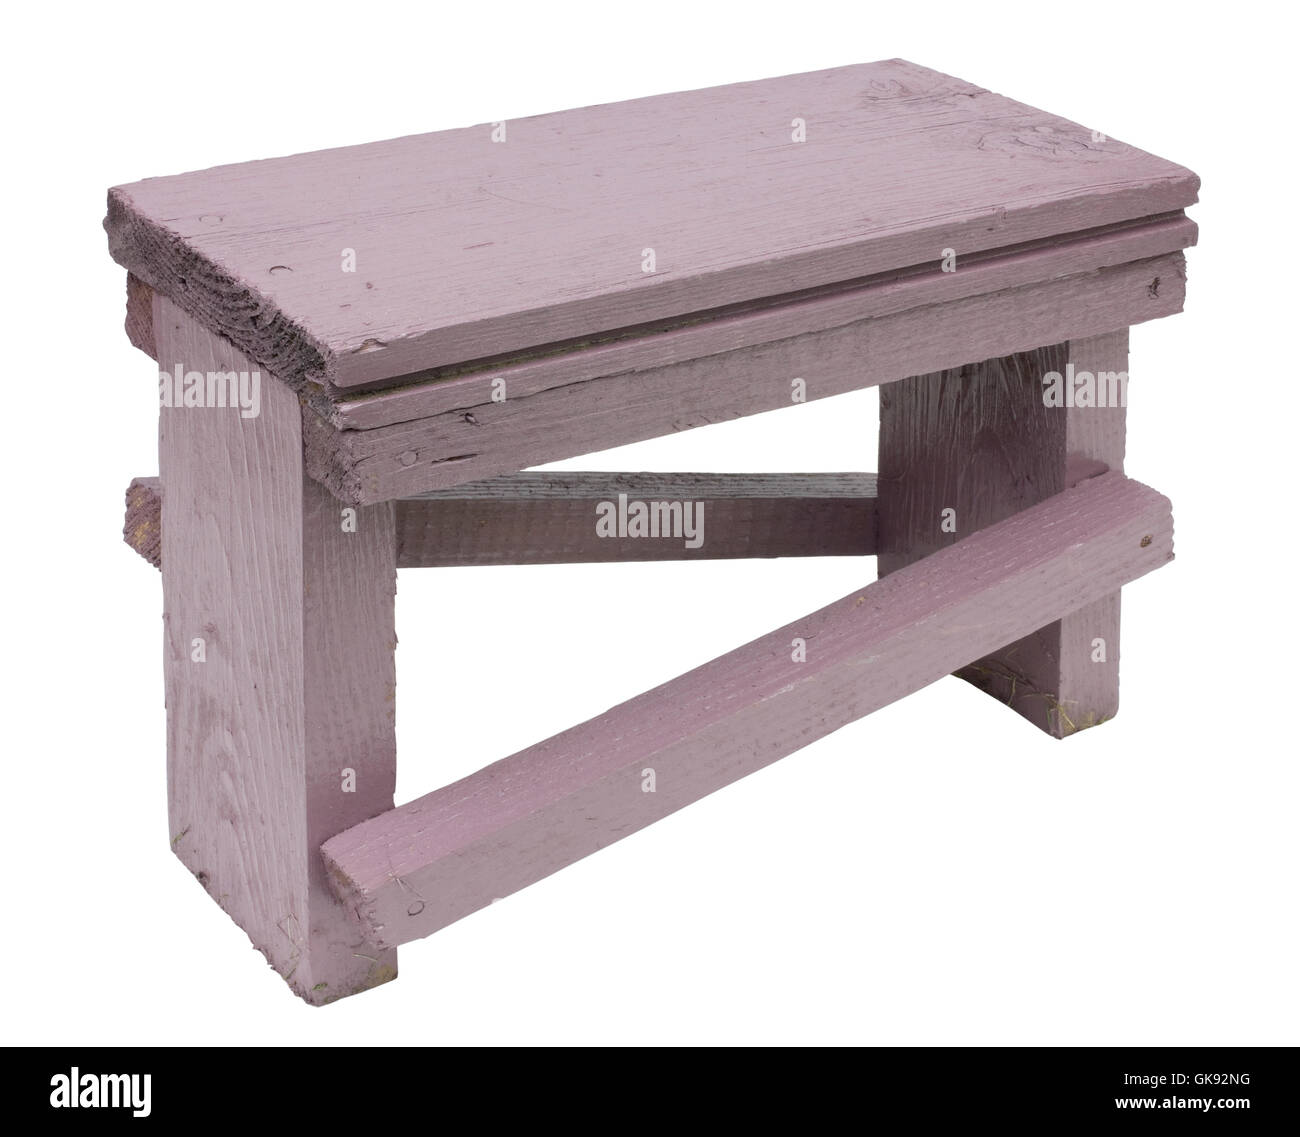 Awe Inspiring Garden Bench Cut Out Stock Images Pictures Alamy Andrewgaddart Wooden Chair Designs For Living Room Andrewgaddartcom